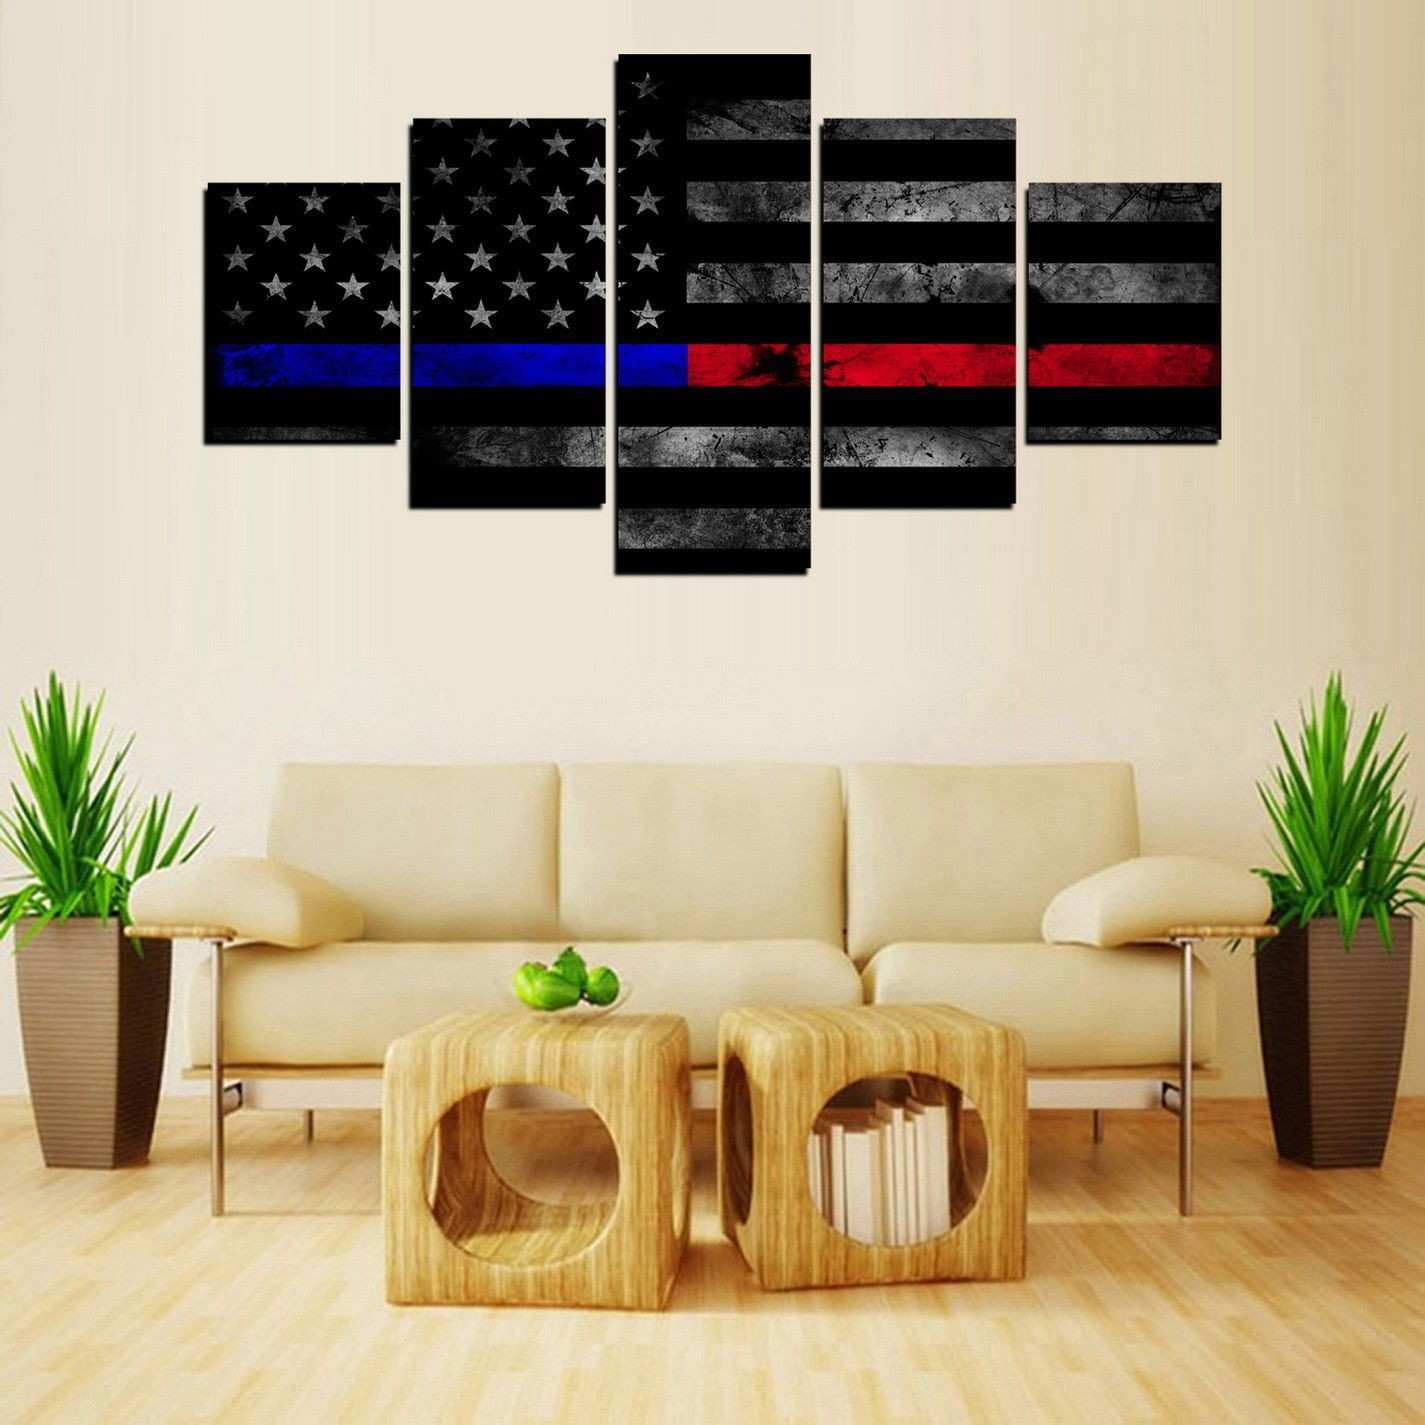 Black White and Red Canvas Wall Art Lovely $8 99 Canvas Wall Art Thin Blue and Red Line American Flag Ebay